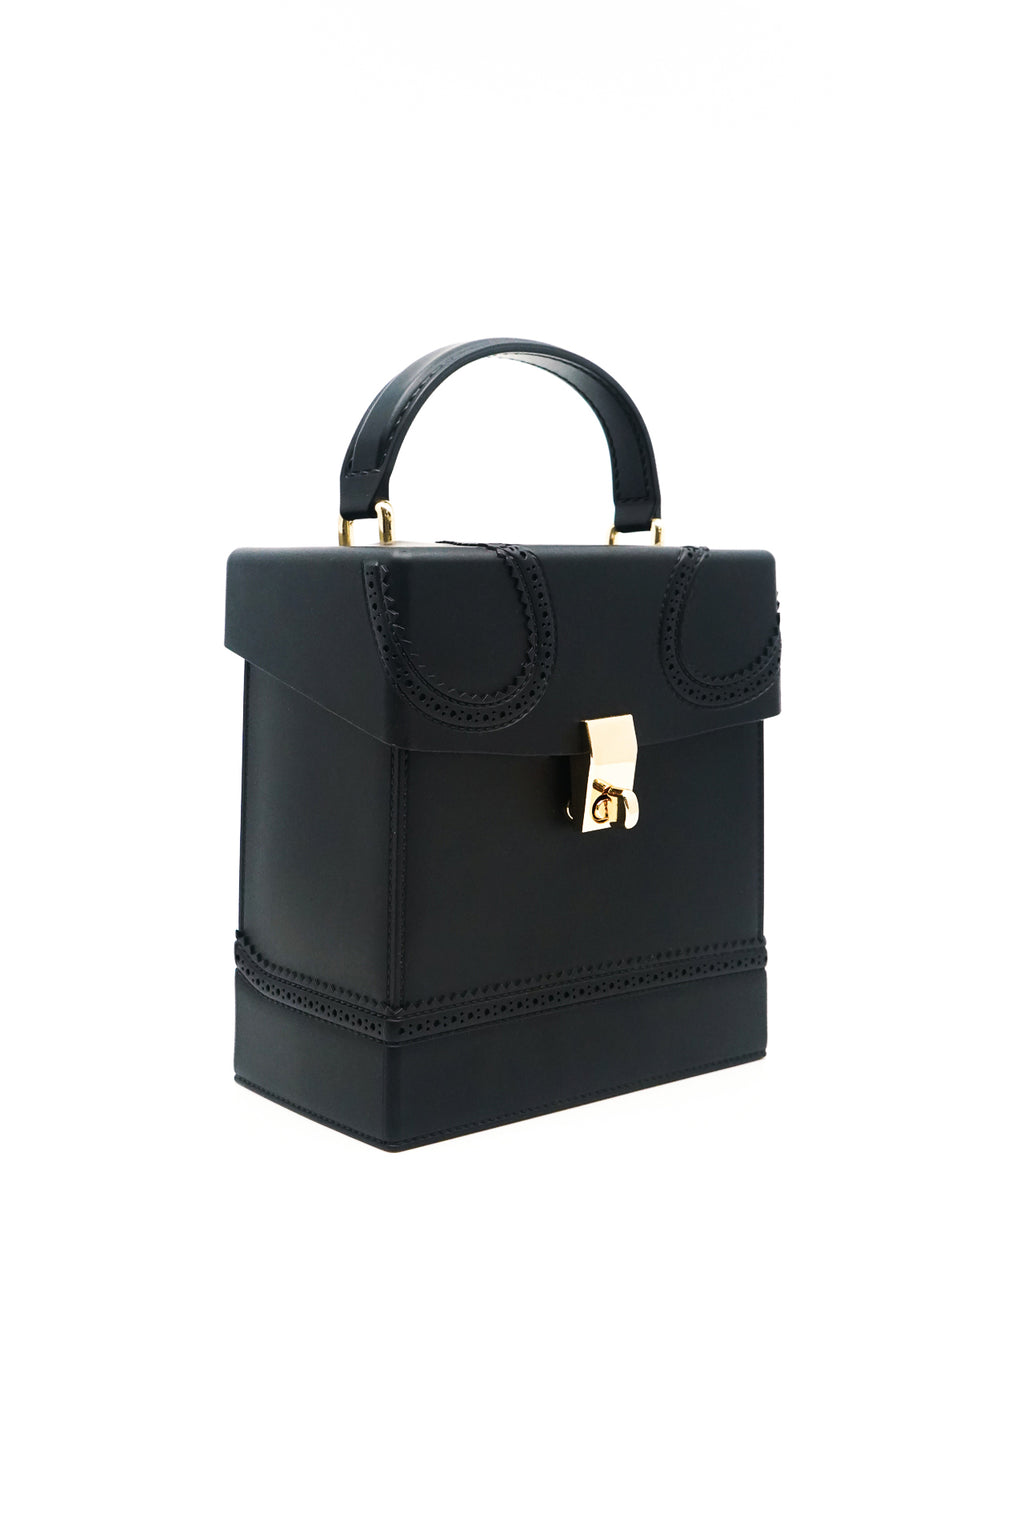 Square Box Jelly Handbag with Handle and Strap in Black - Fashion House USA